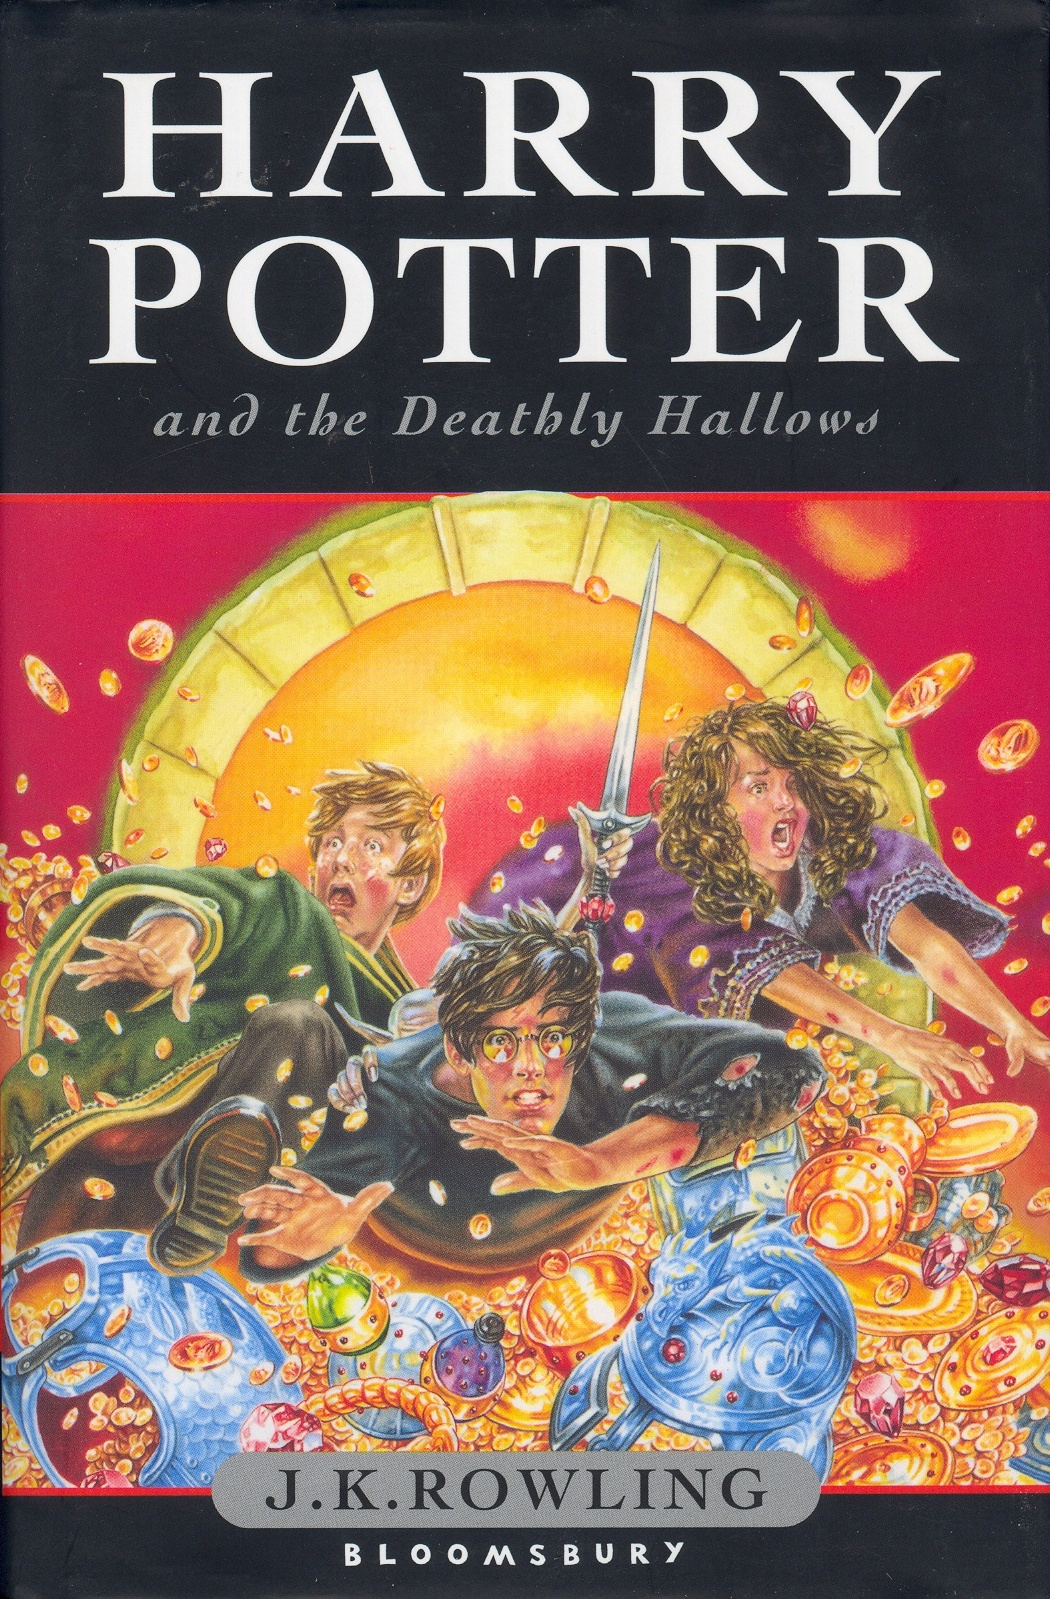 Paginas De Los Libros De Harry Potter Libro Harry Potter And The Deathly Hallows 2007 21